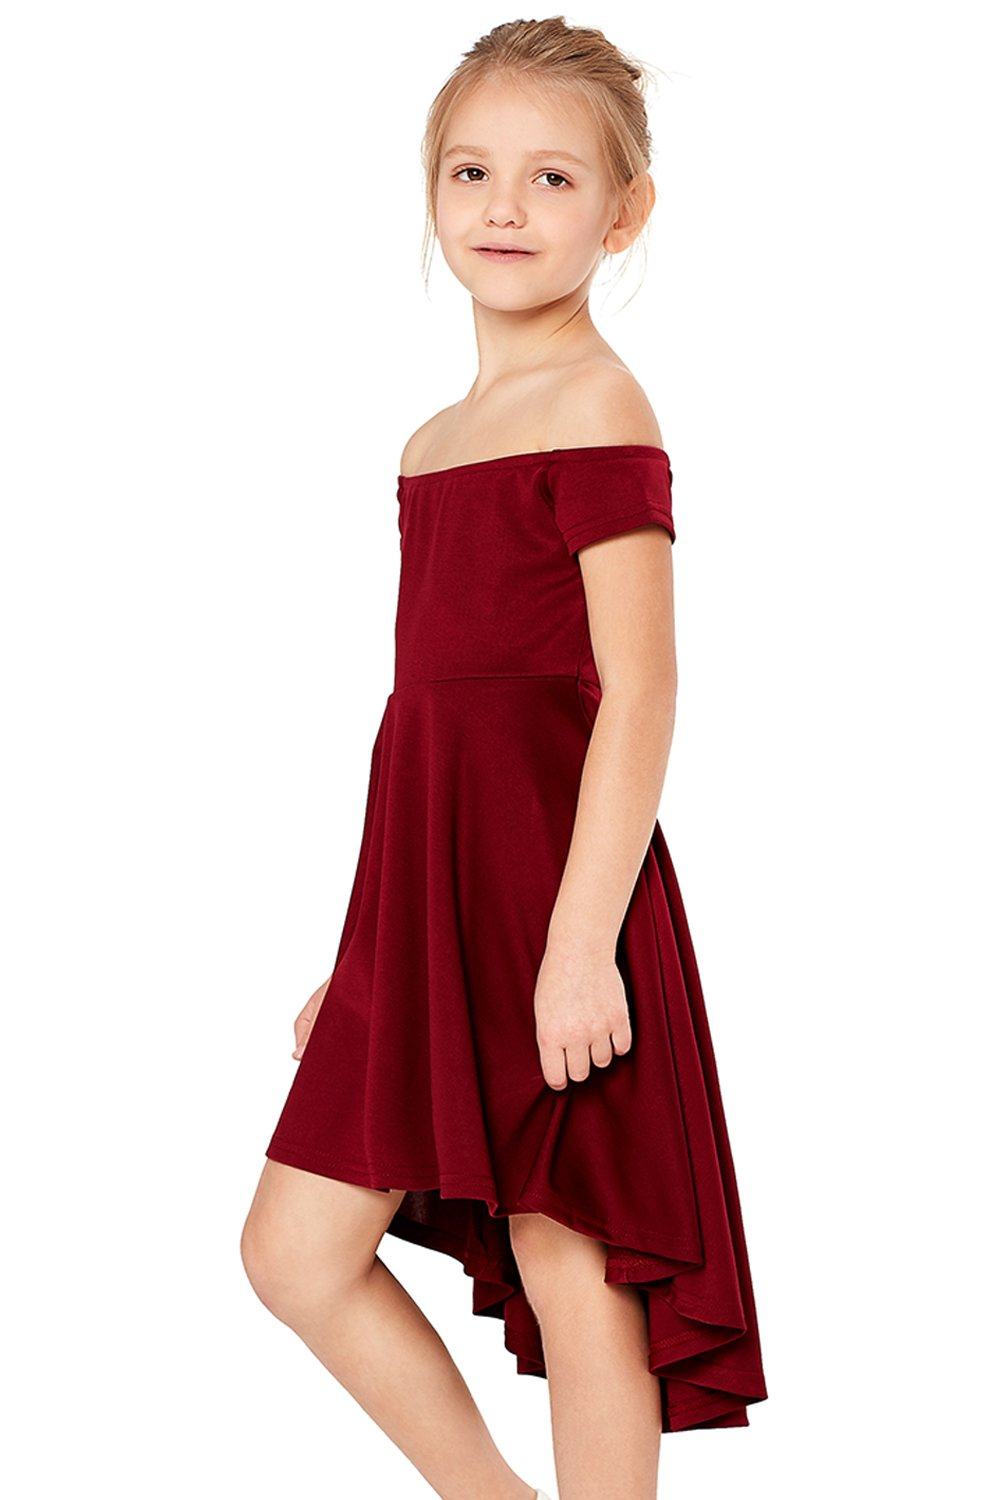 Red All The Rage Skater Dress for Little Girls-Baby&Kids, Kids Dresses-Azura Exchange